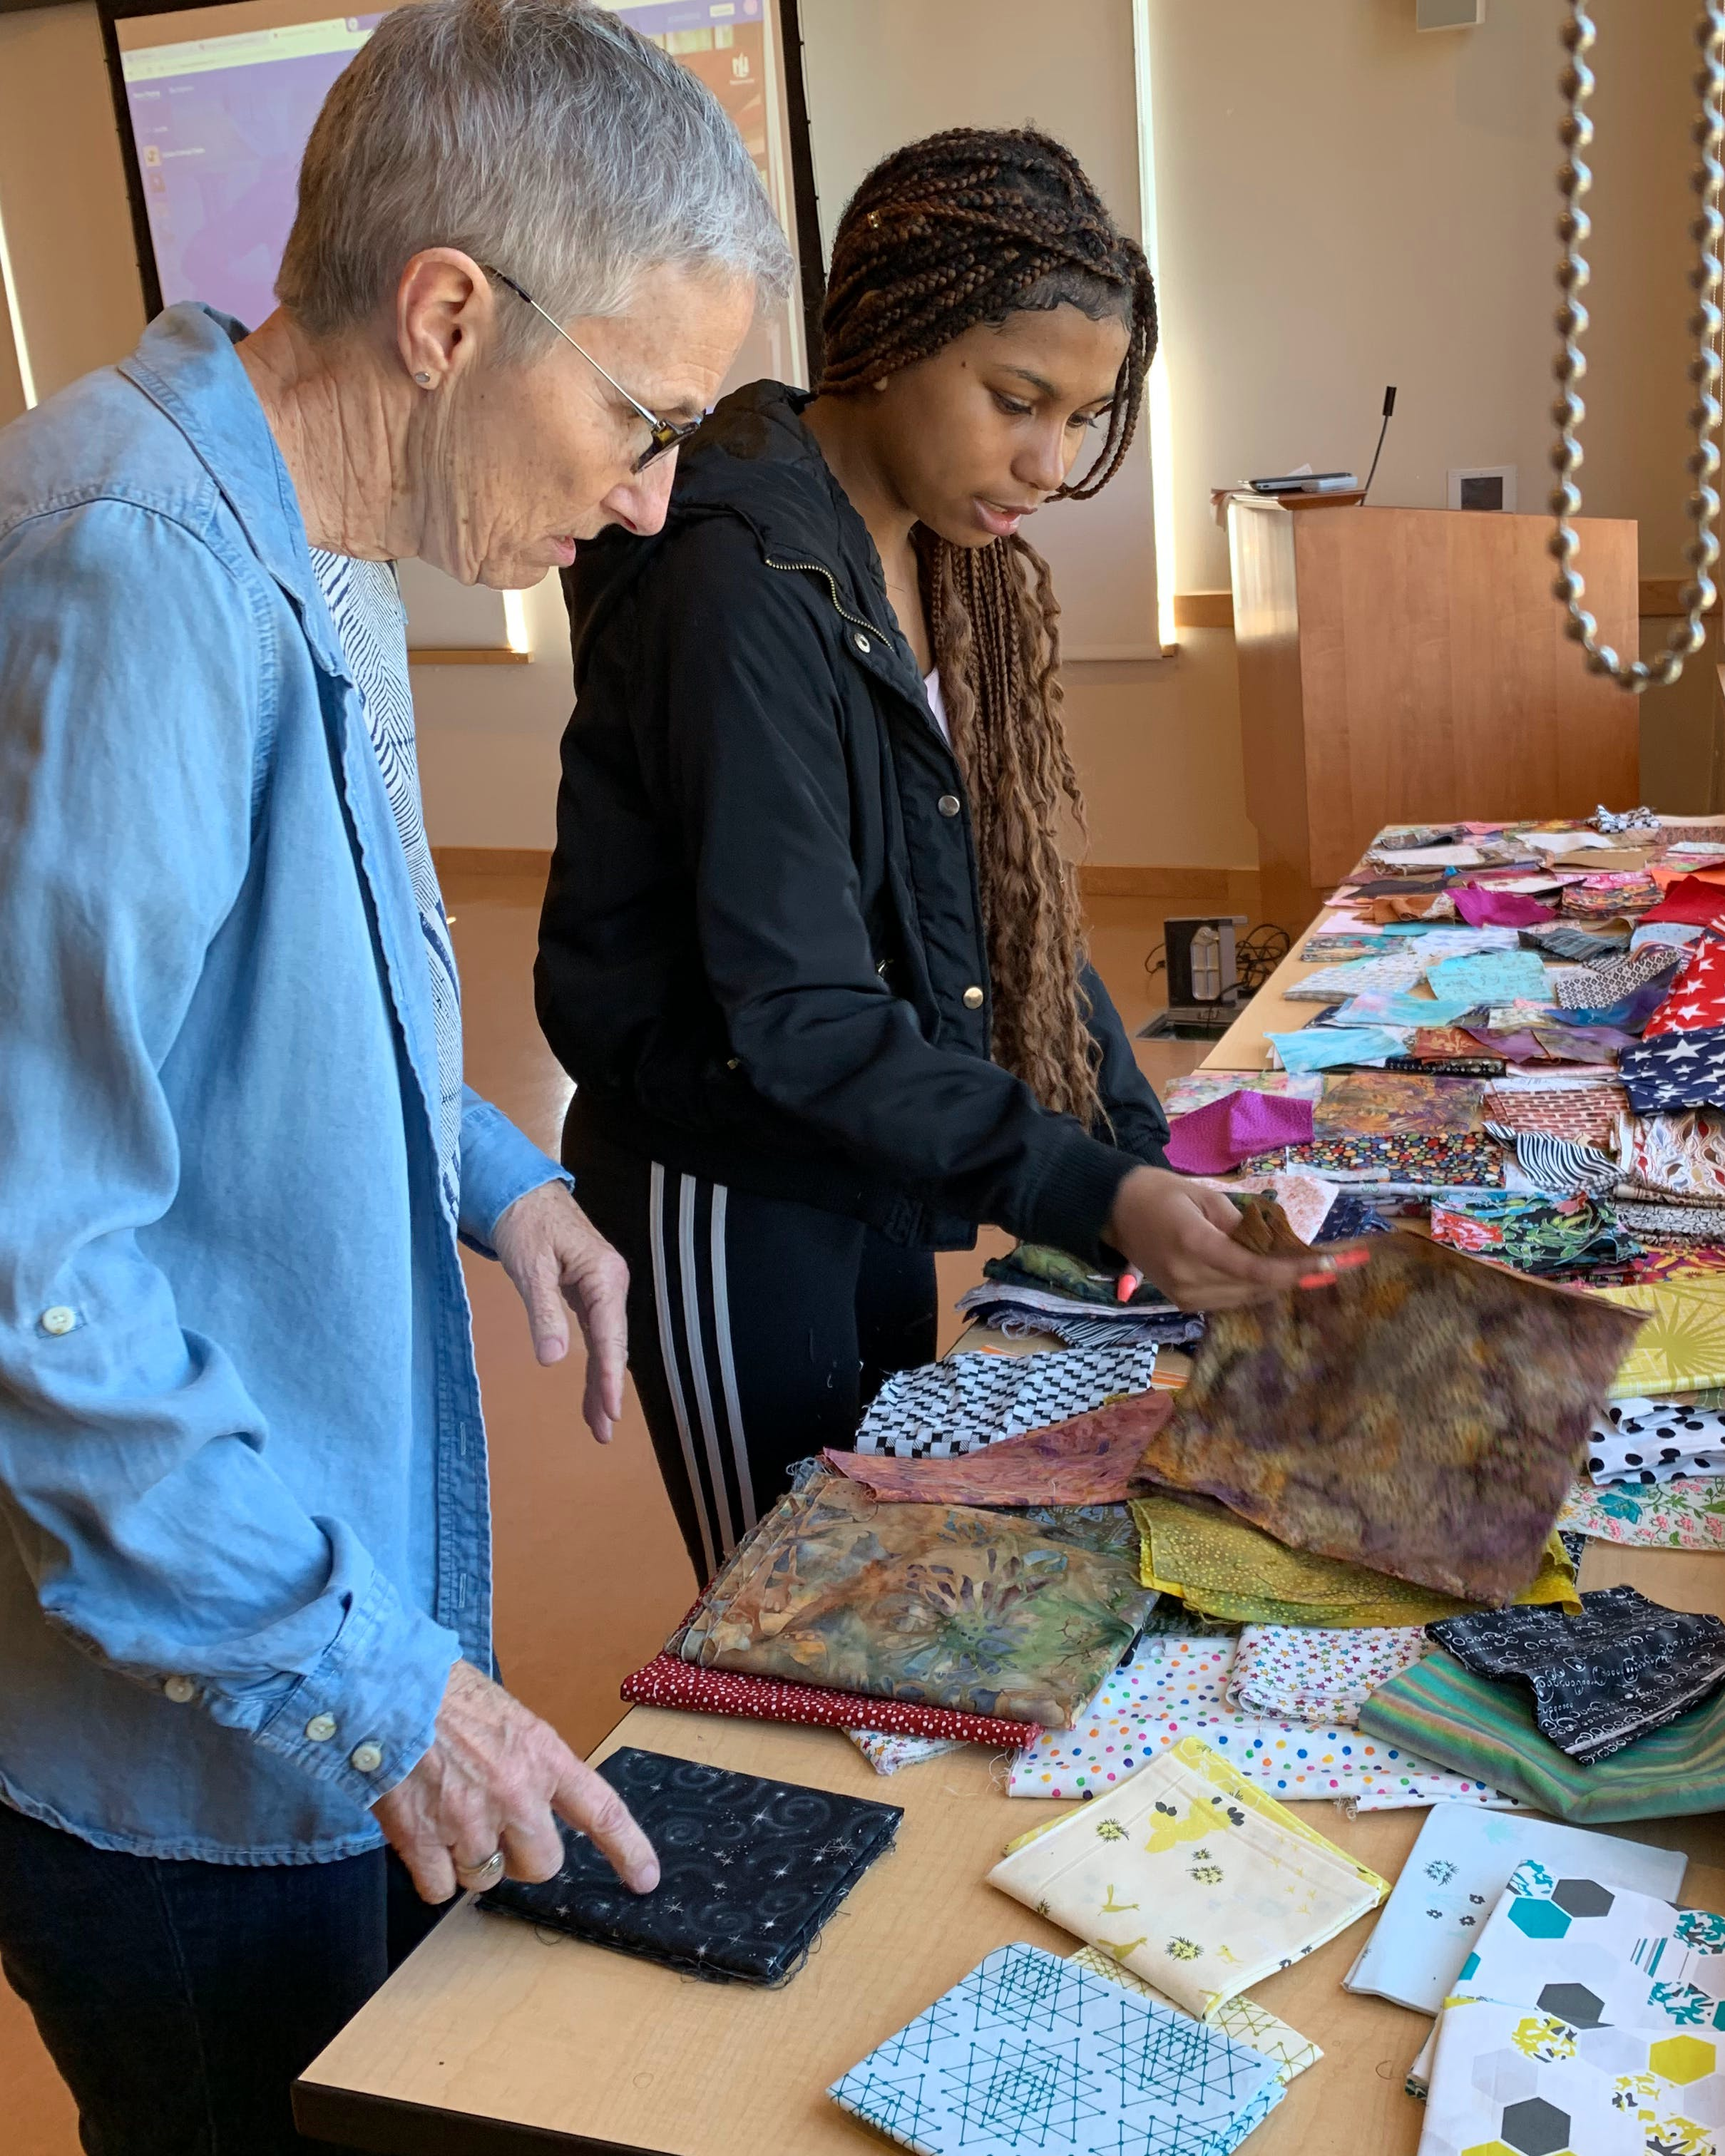 Two people picking out fabric samples